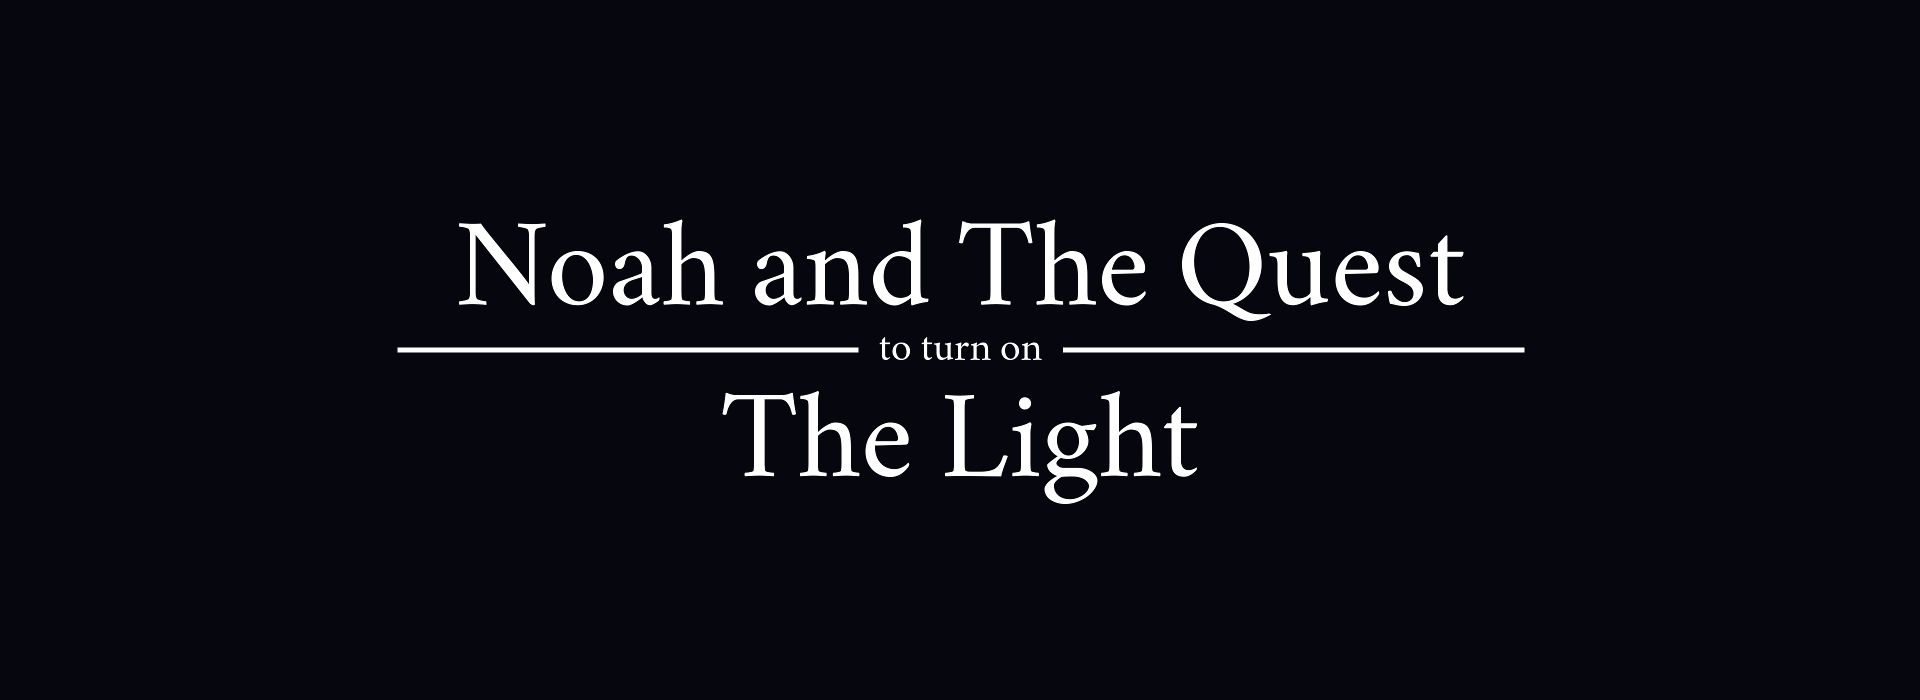 Noah and The Quest to Turn on The Light